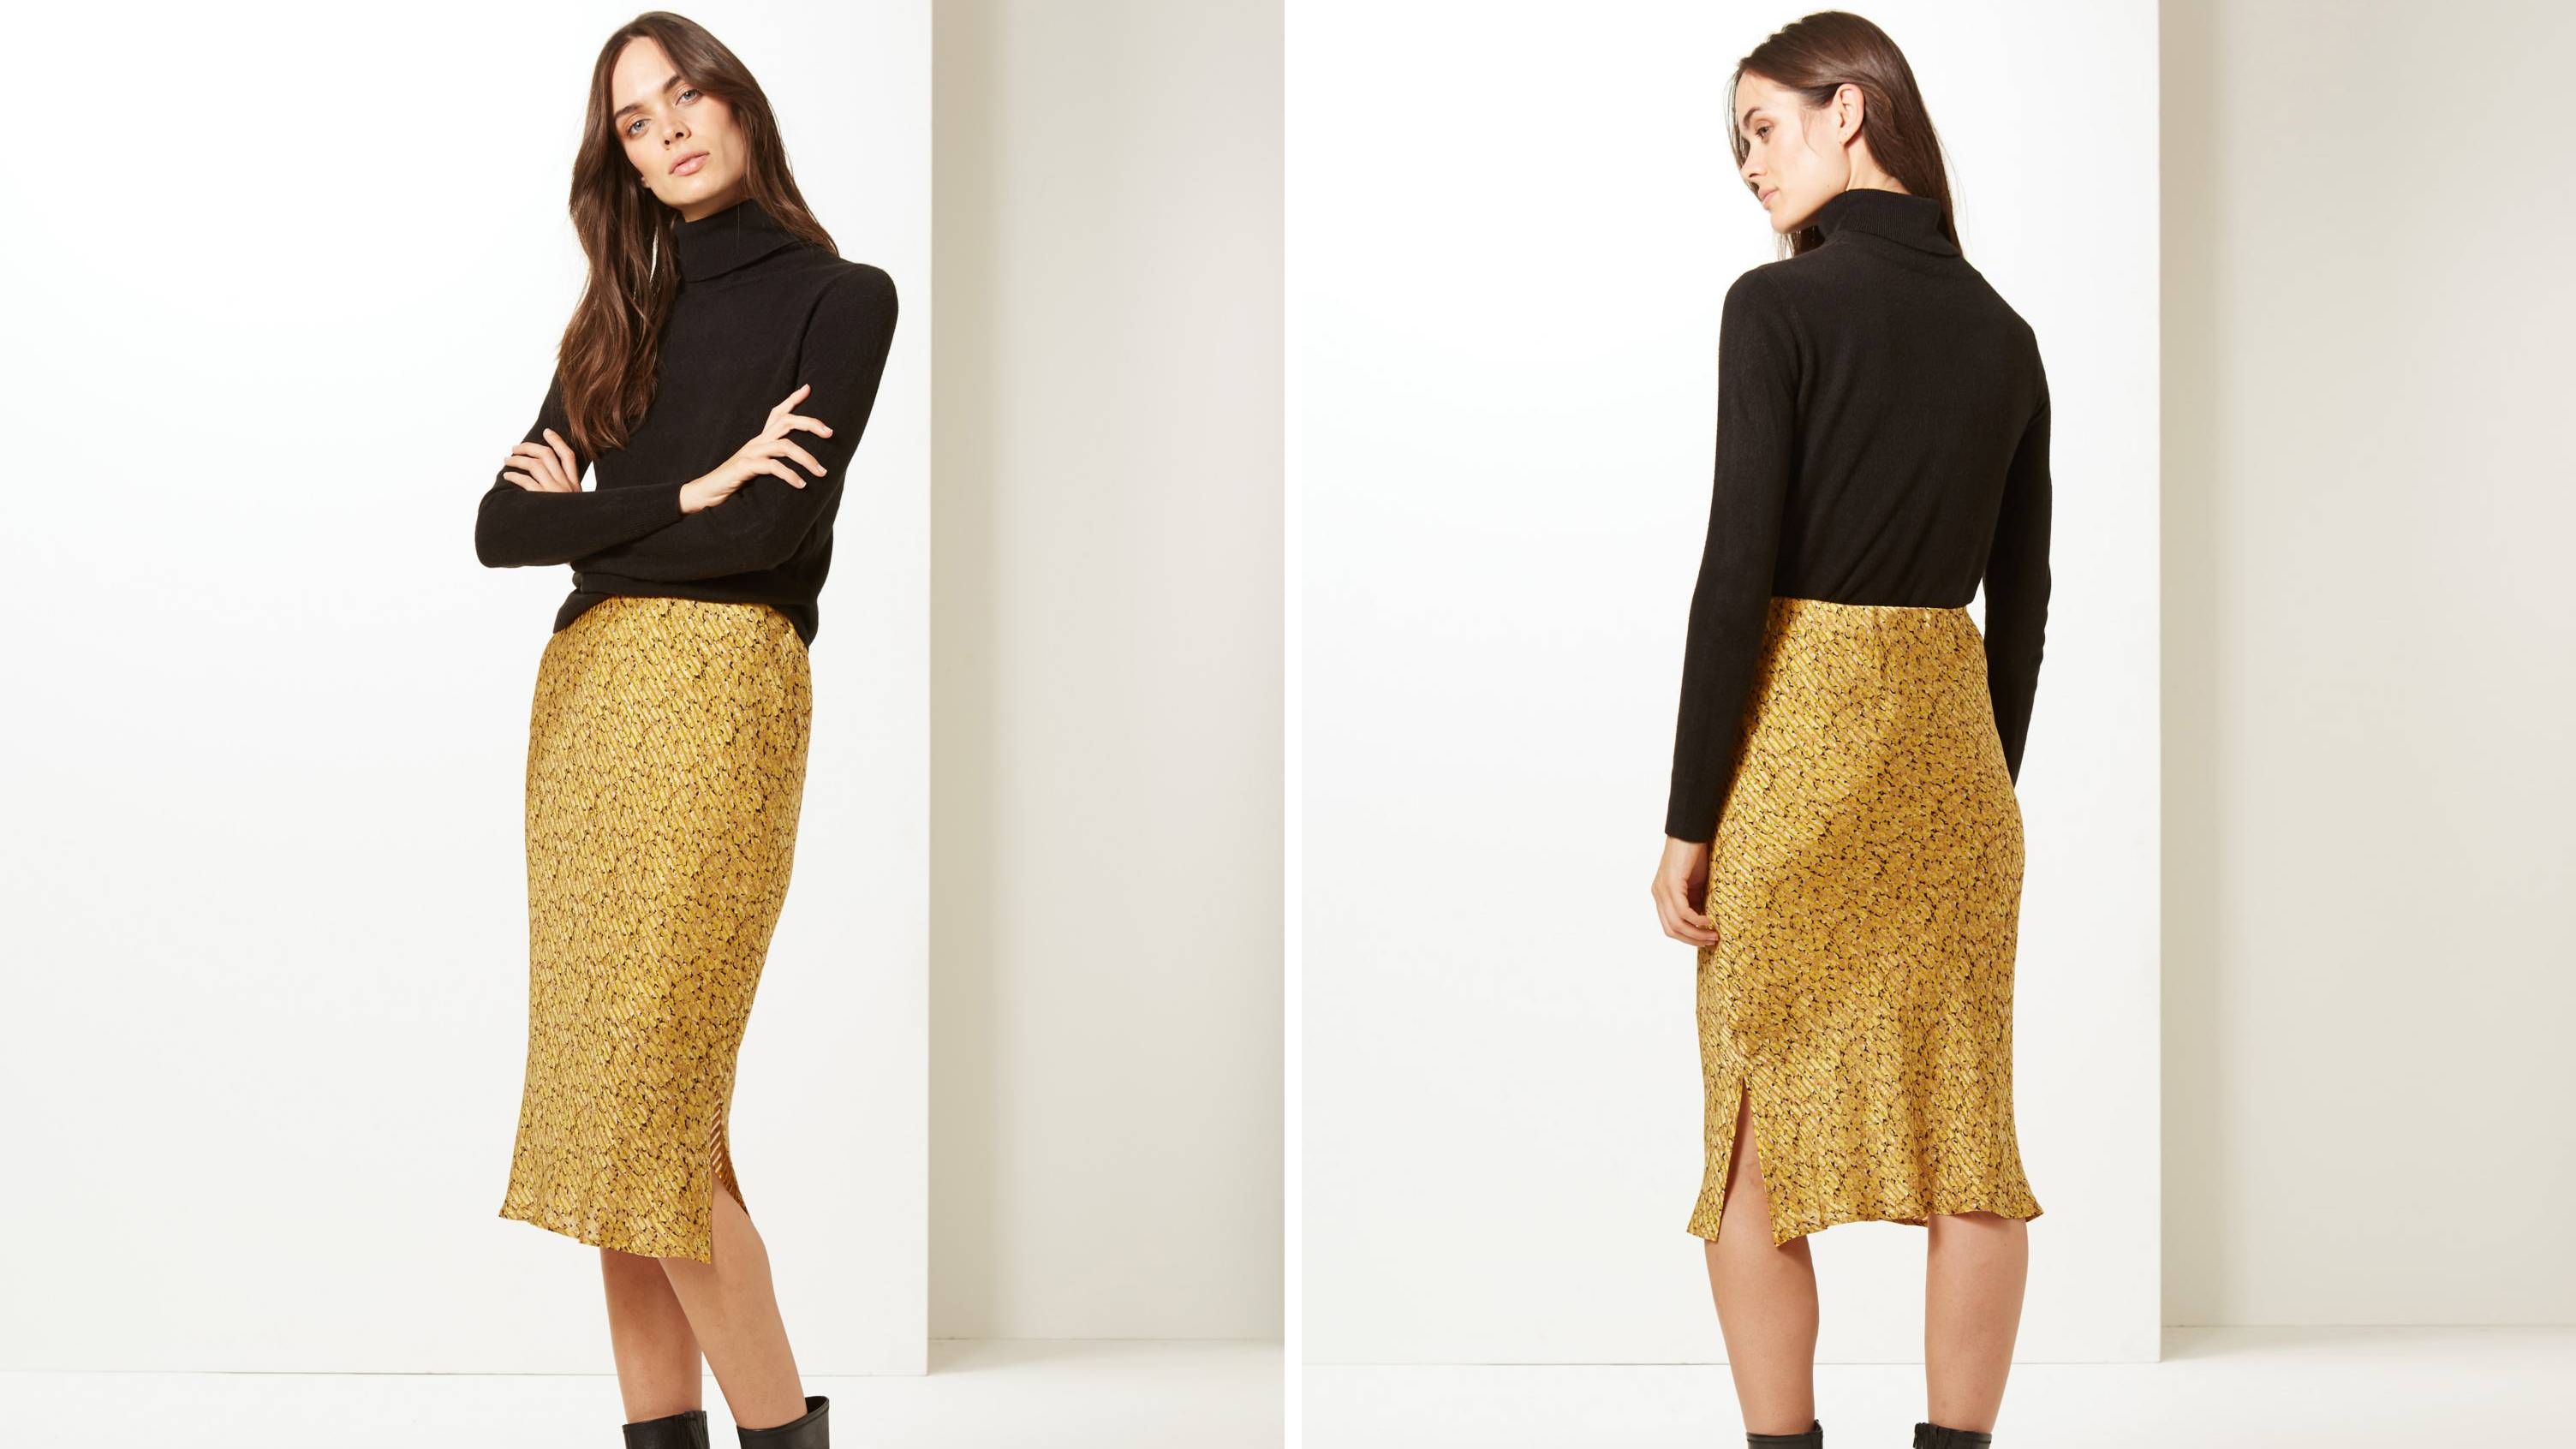 M&S Releases Skirt Version of Iconic Yellow Dress And It's Selling Out